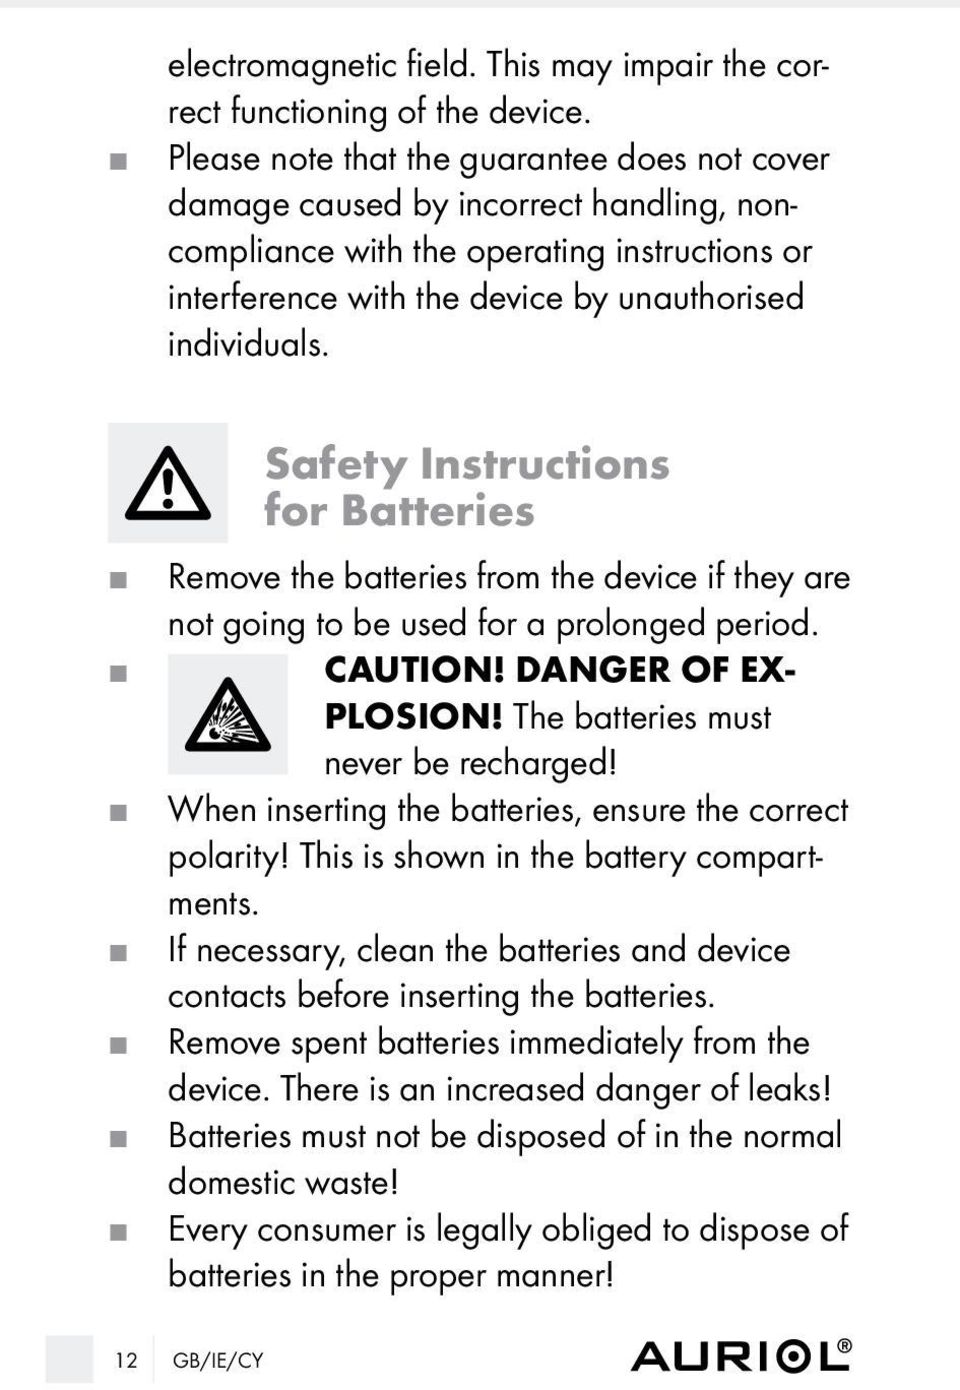 J J J J J J J Safety Instructions for Batteries Remove the batteries from the device if they are not going to be used for a prolonged period. CAUTION! DANGER OF EX- PLOSION!